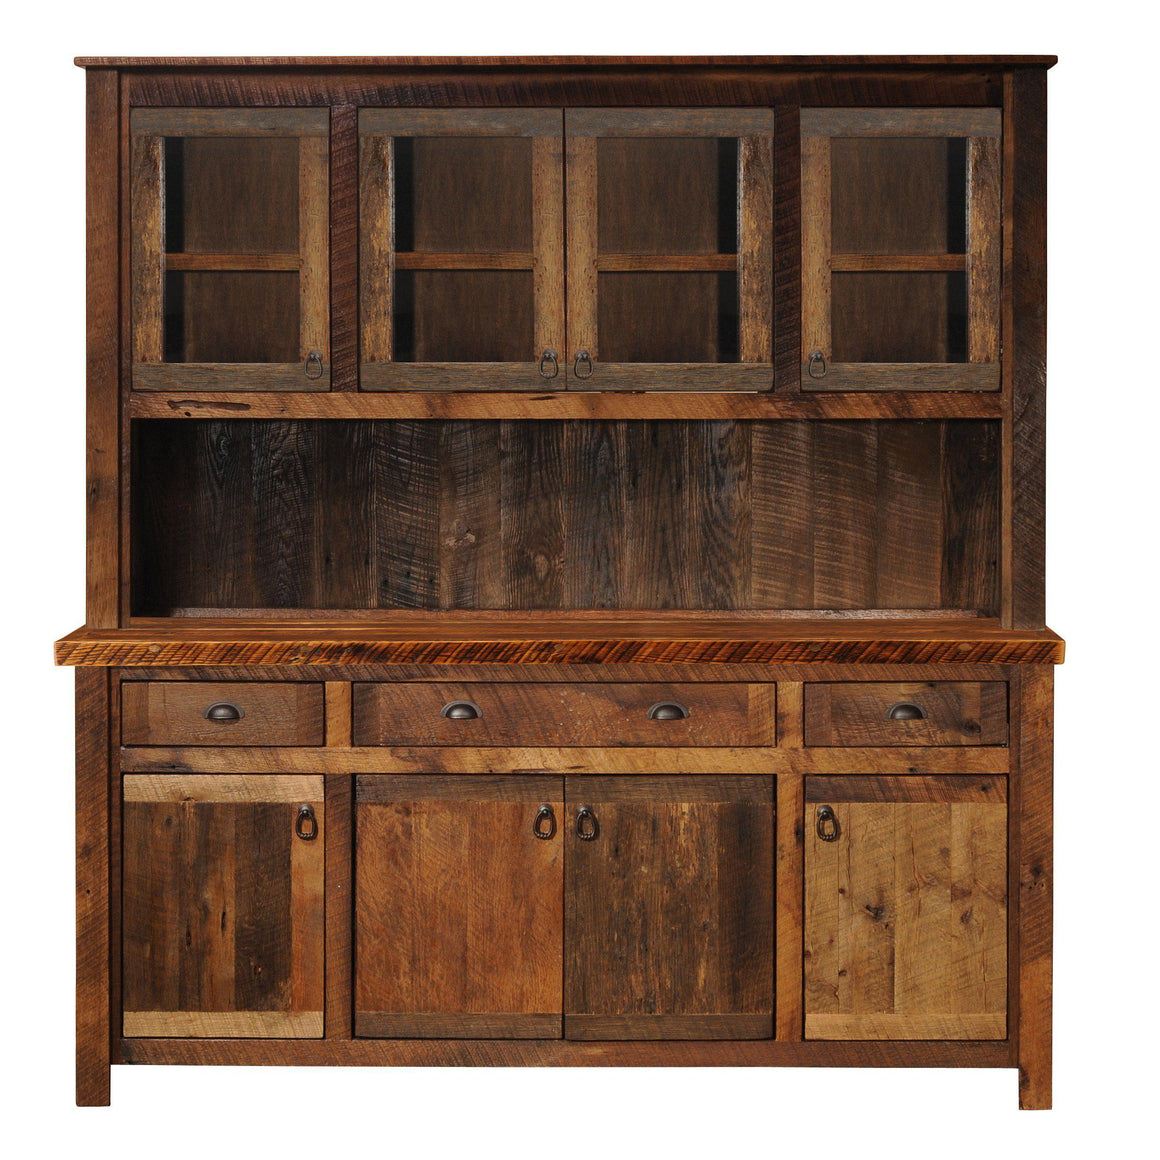 "Barnwood 75"" Buffet & Hutch - Antique Oak Top and Artisan Top - Rustic Deco Incorporated"